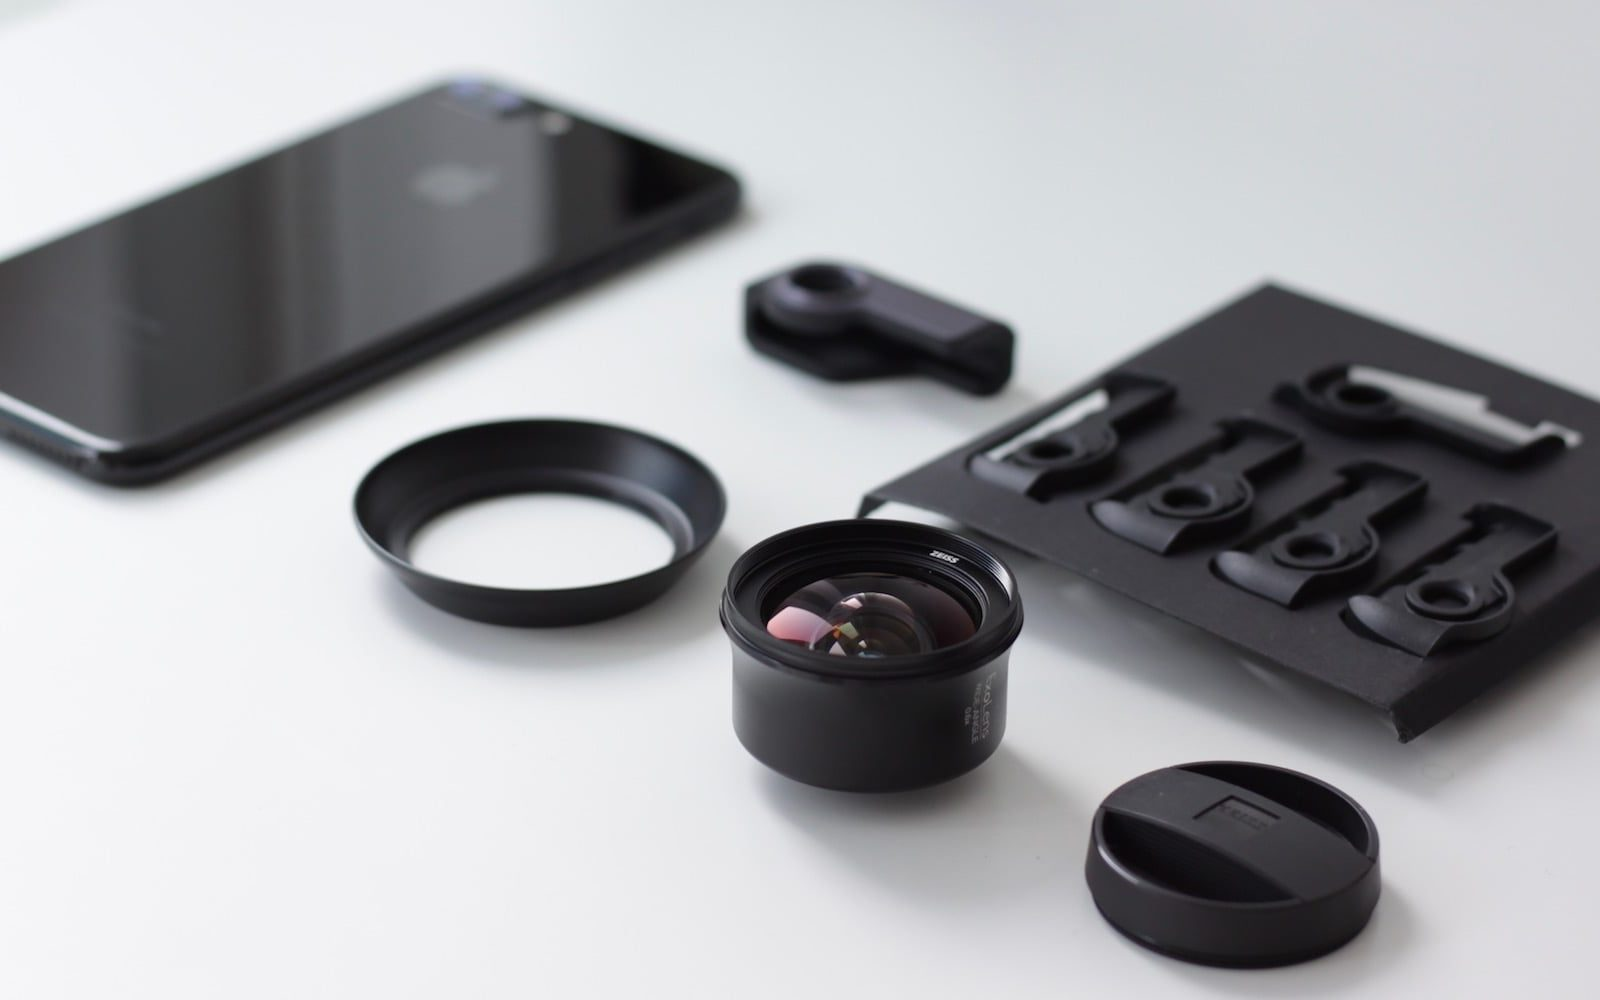 reputable site b561e 554a4 9to5Rewards: ExoLens Pro with Optics by ZEISS Wide-Angle Kit for ...